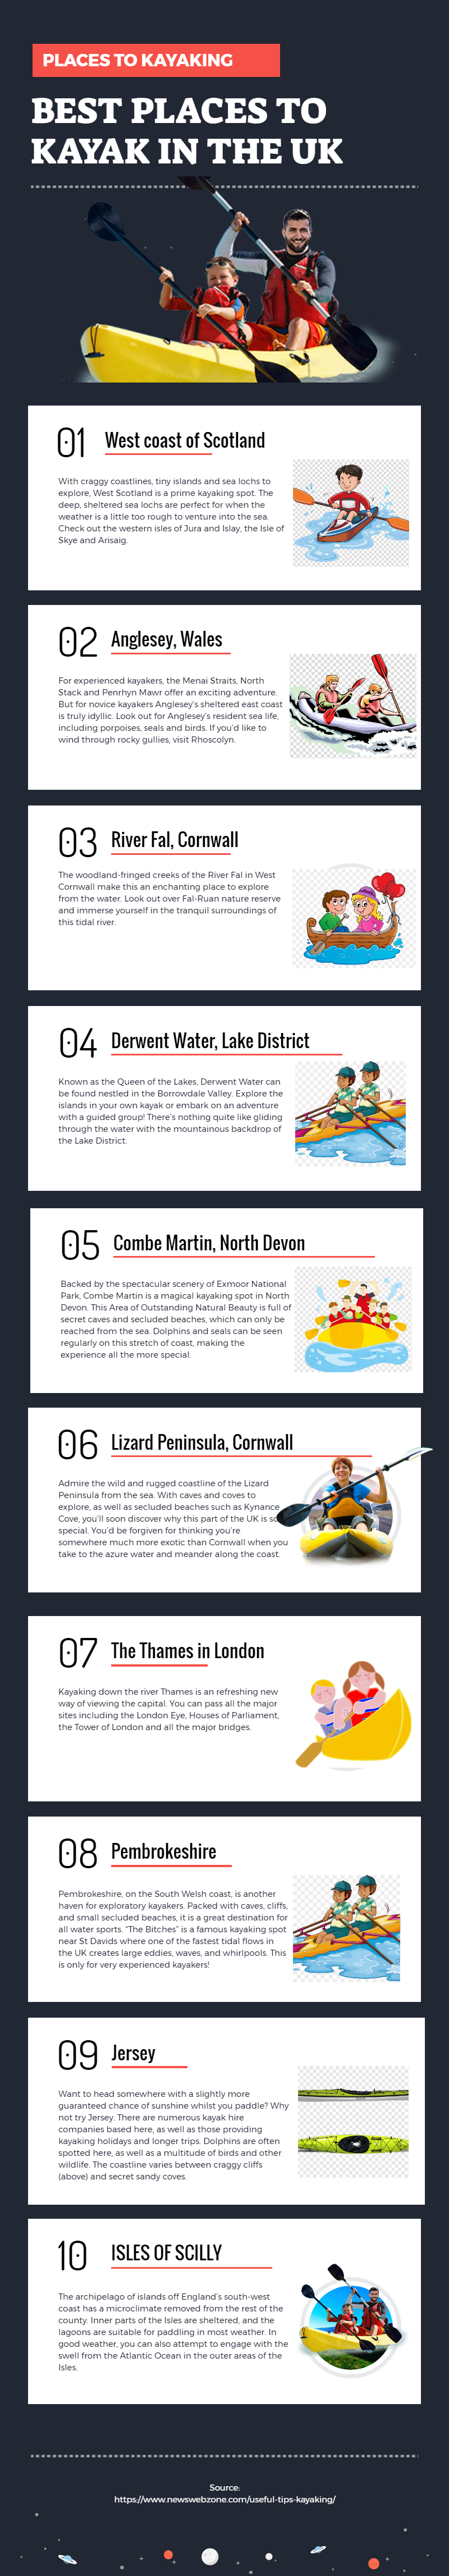 Best Places To Kayaking In The Uk